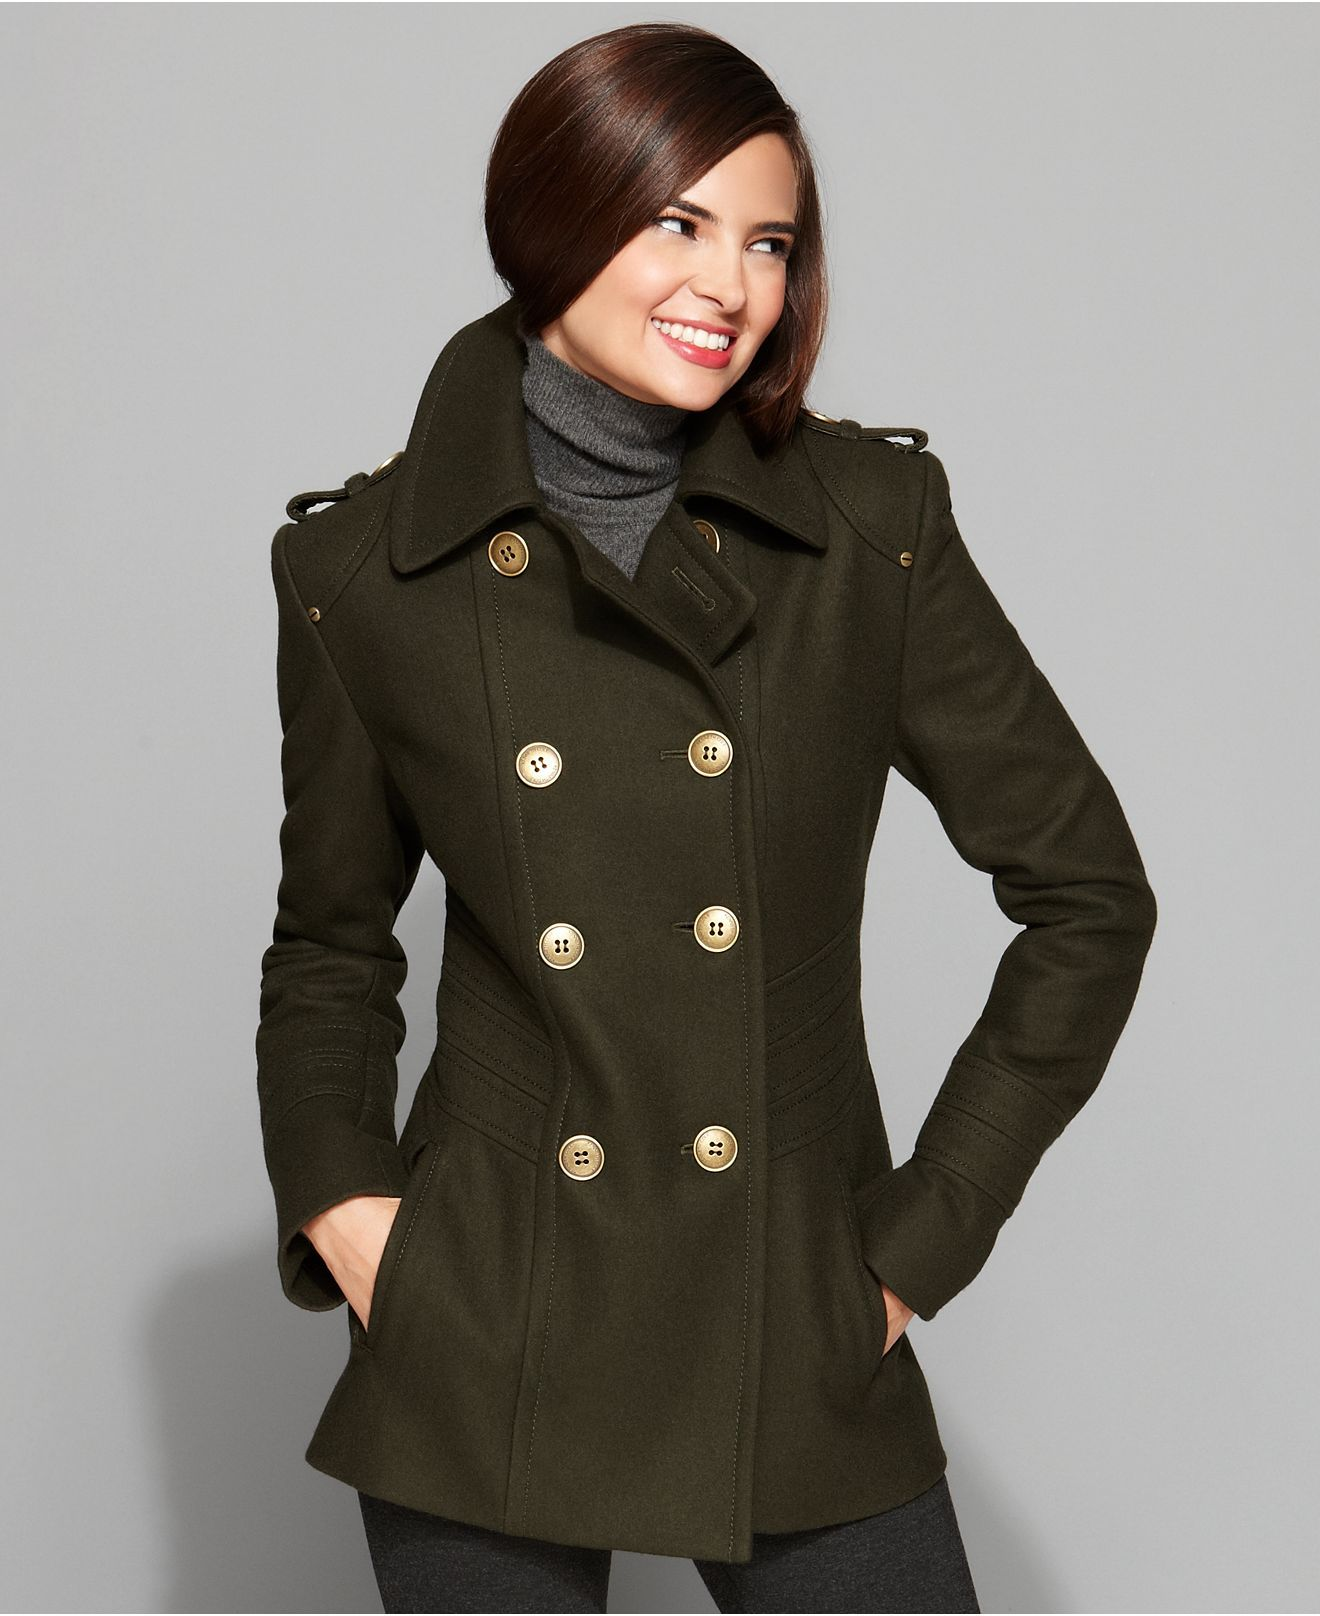 21 Outwear Looks for the Fall | Coats, Olives and Military